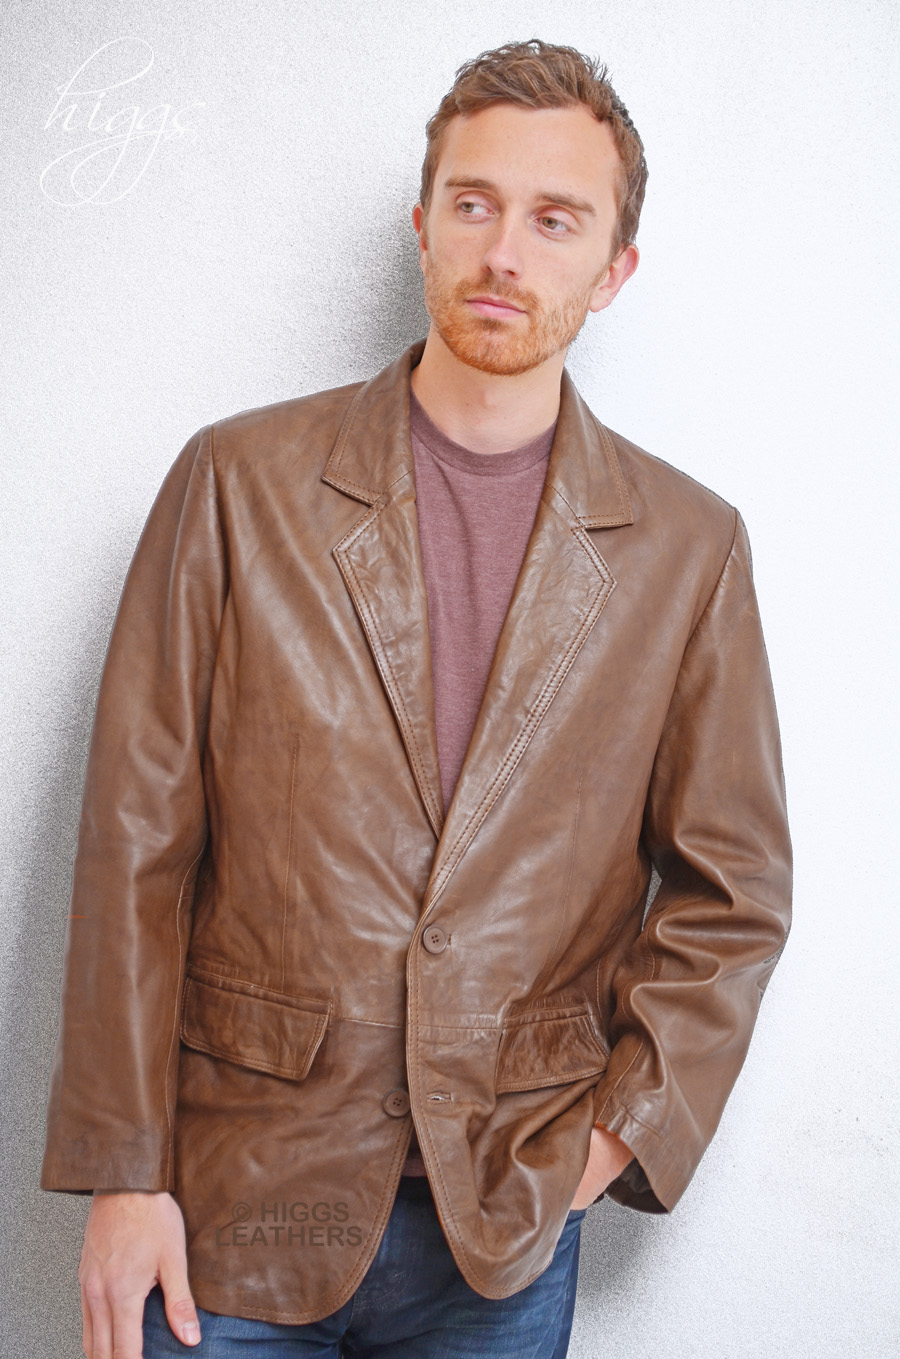 Higgs Leathers {NEW!}  Milano (men's retro leather suit jackets) From our selection of leather Retro jackets for men!